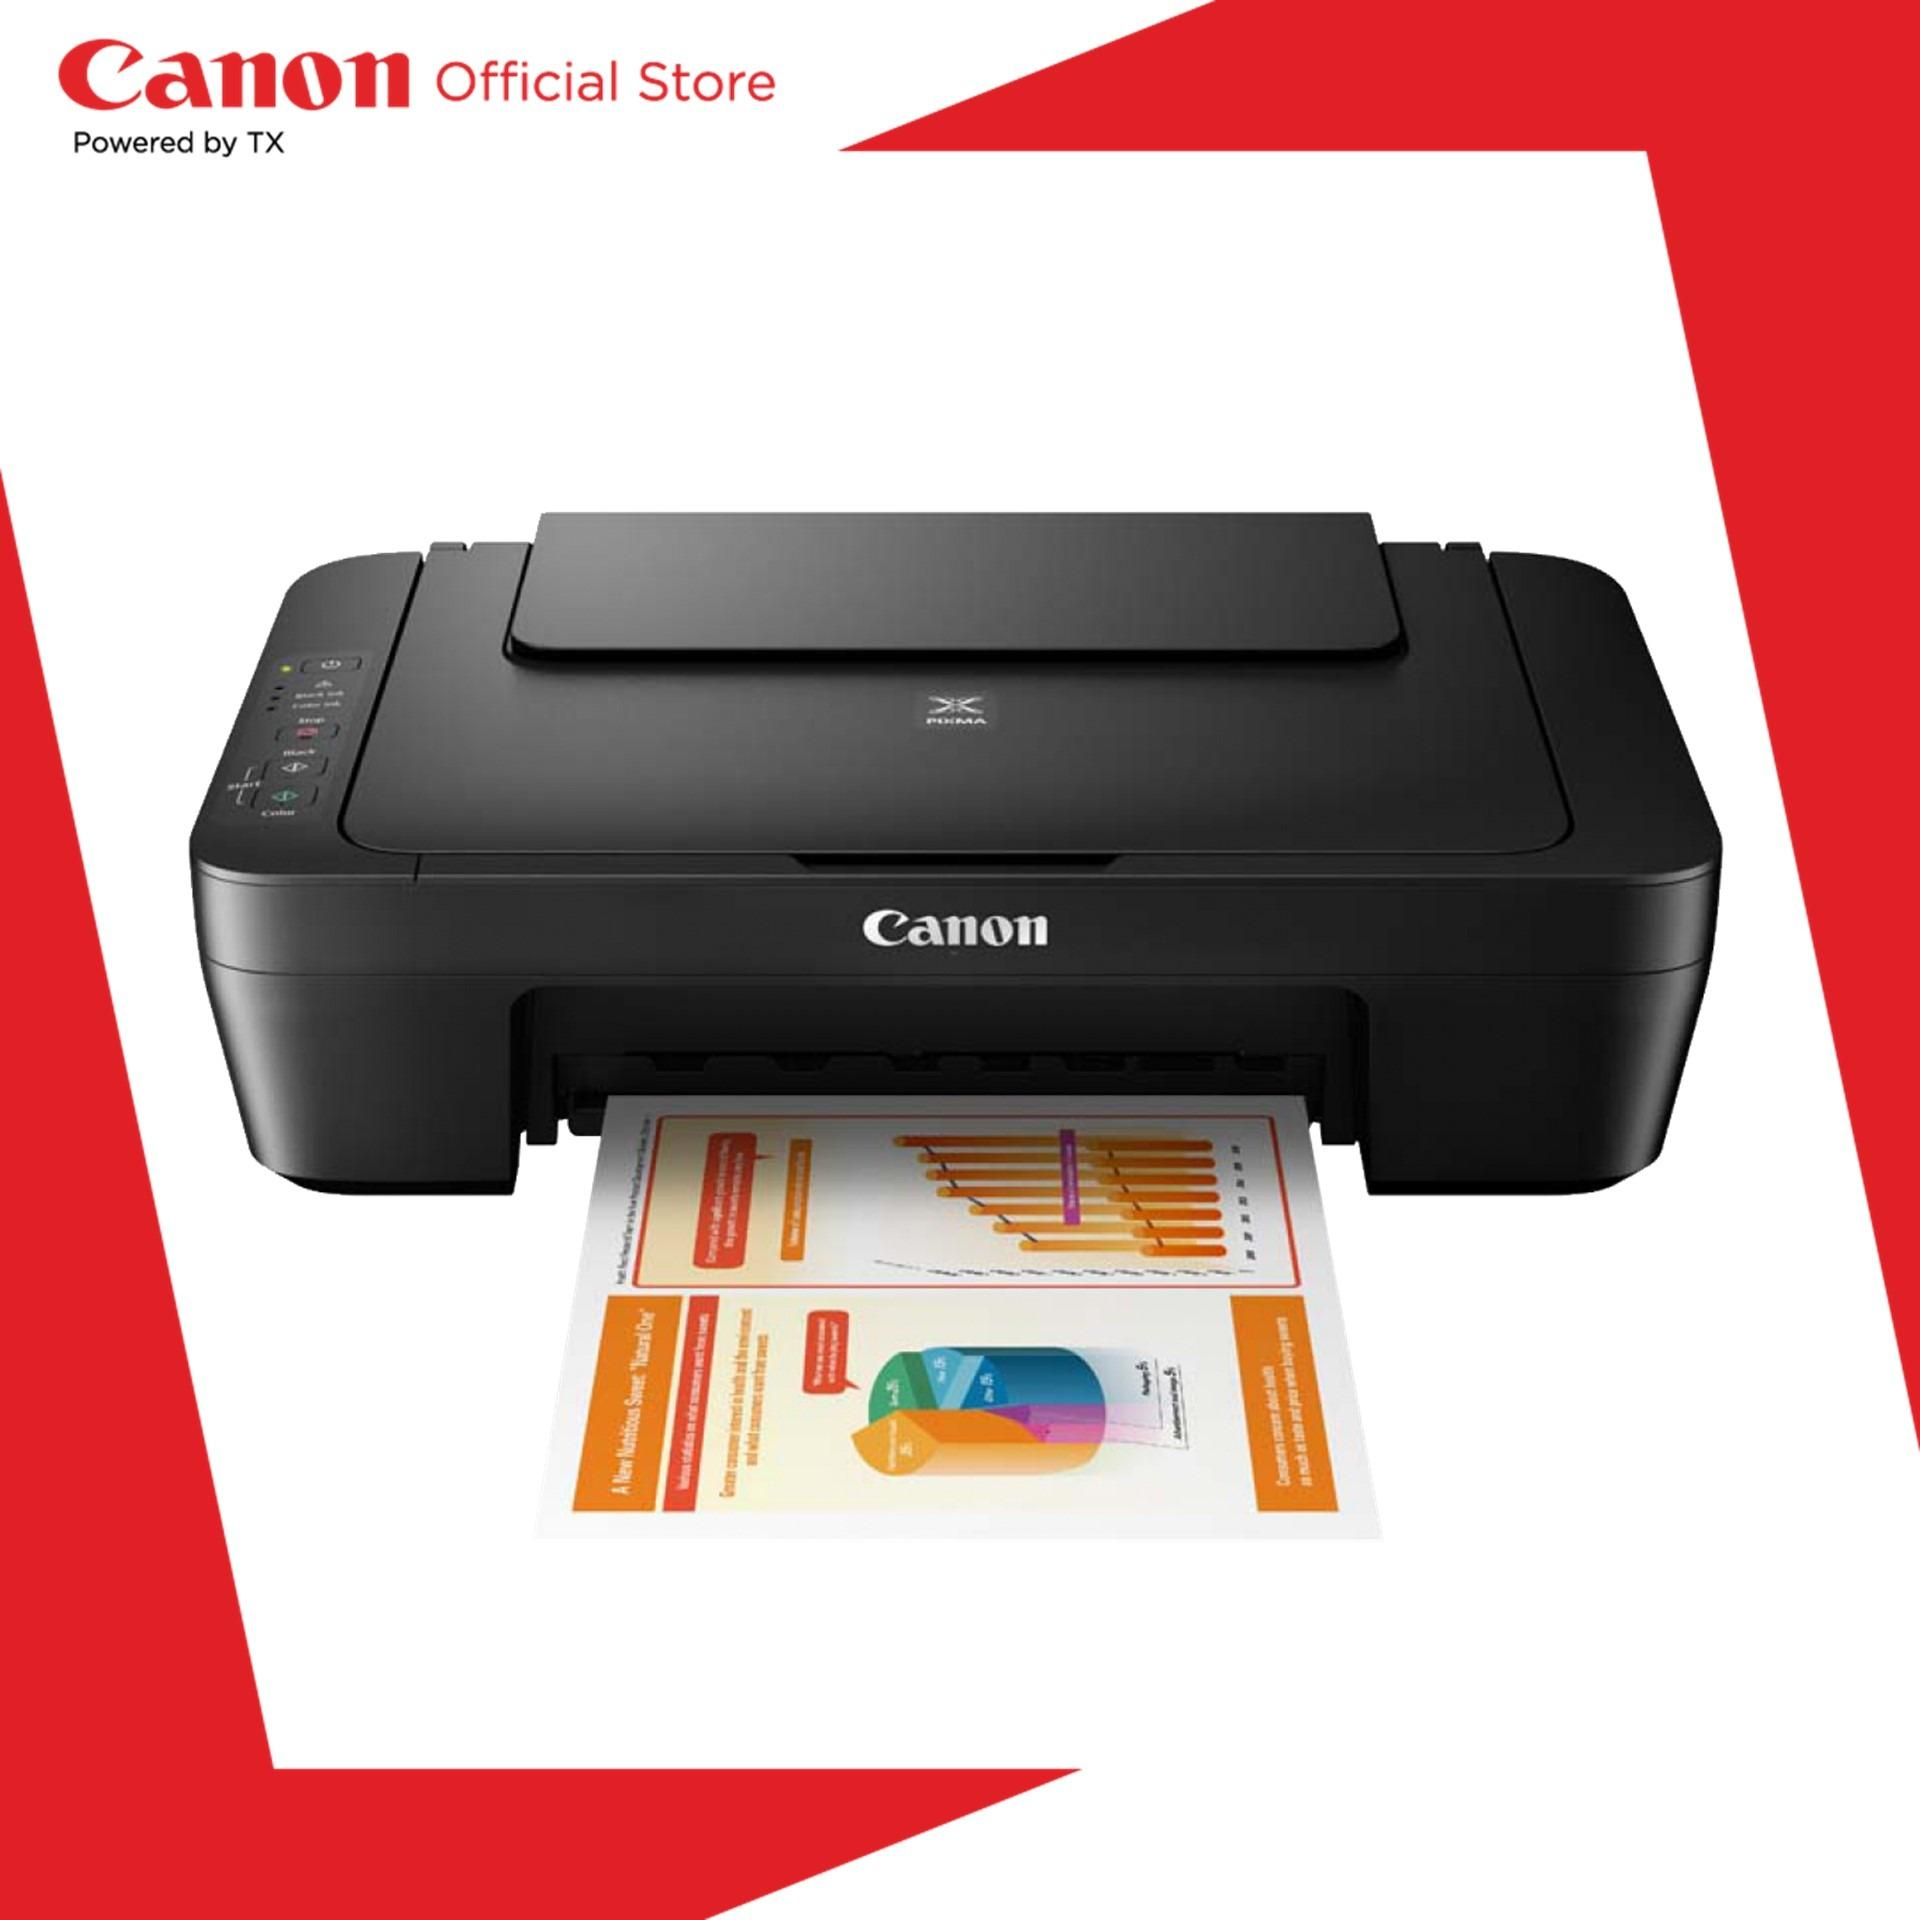 Canon MG2570S Multi Function Color Printer - Print / Scan / Copy